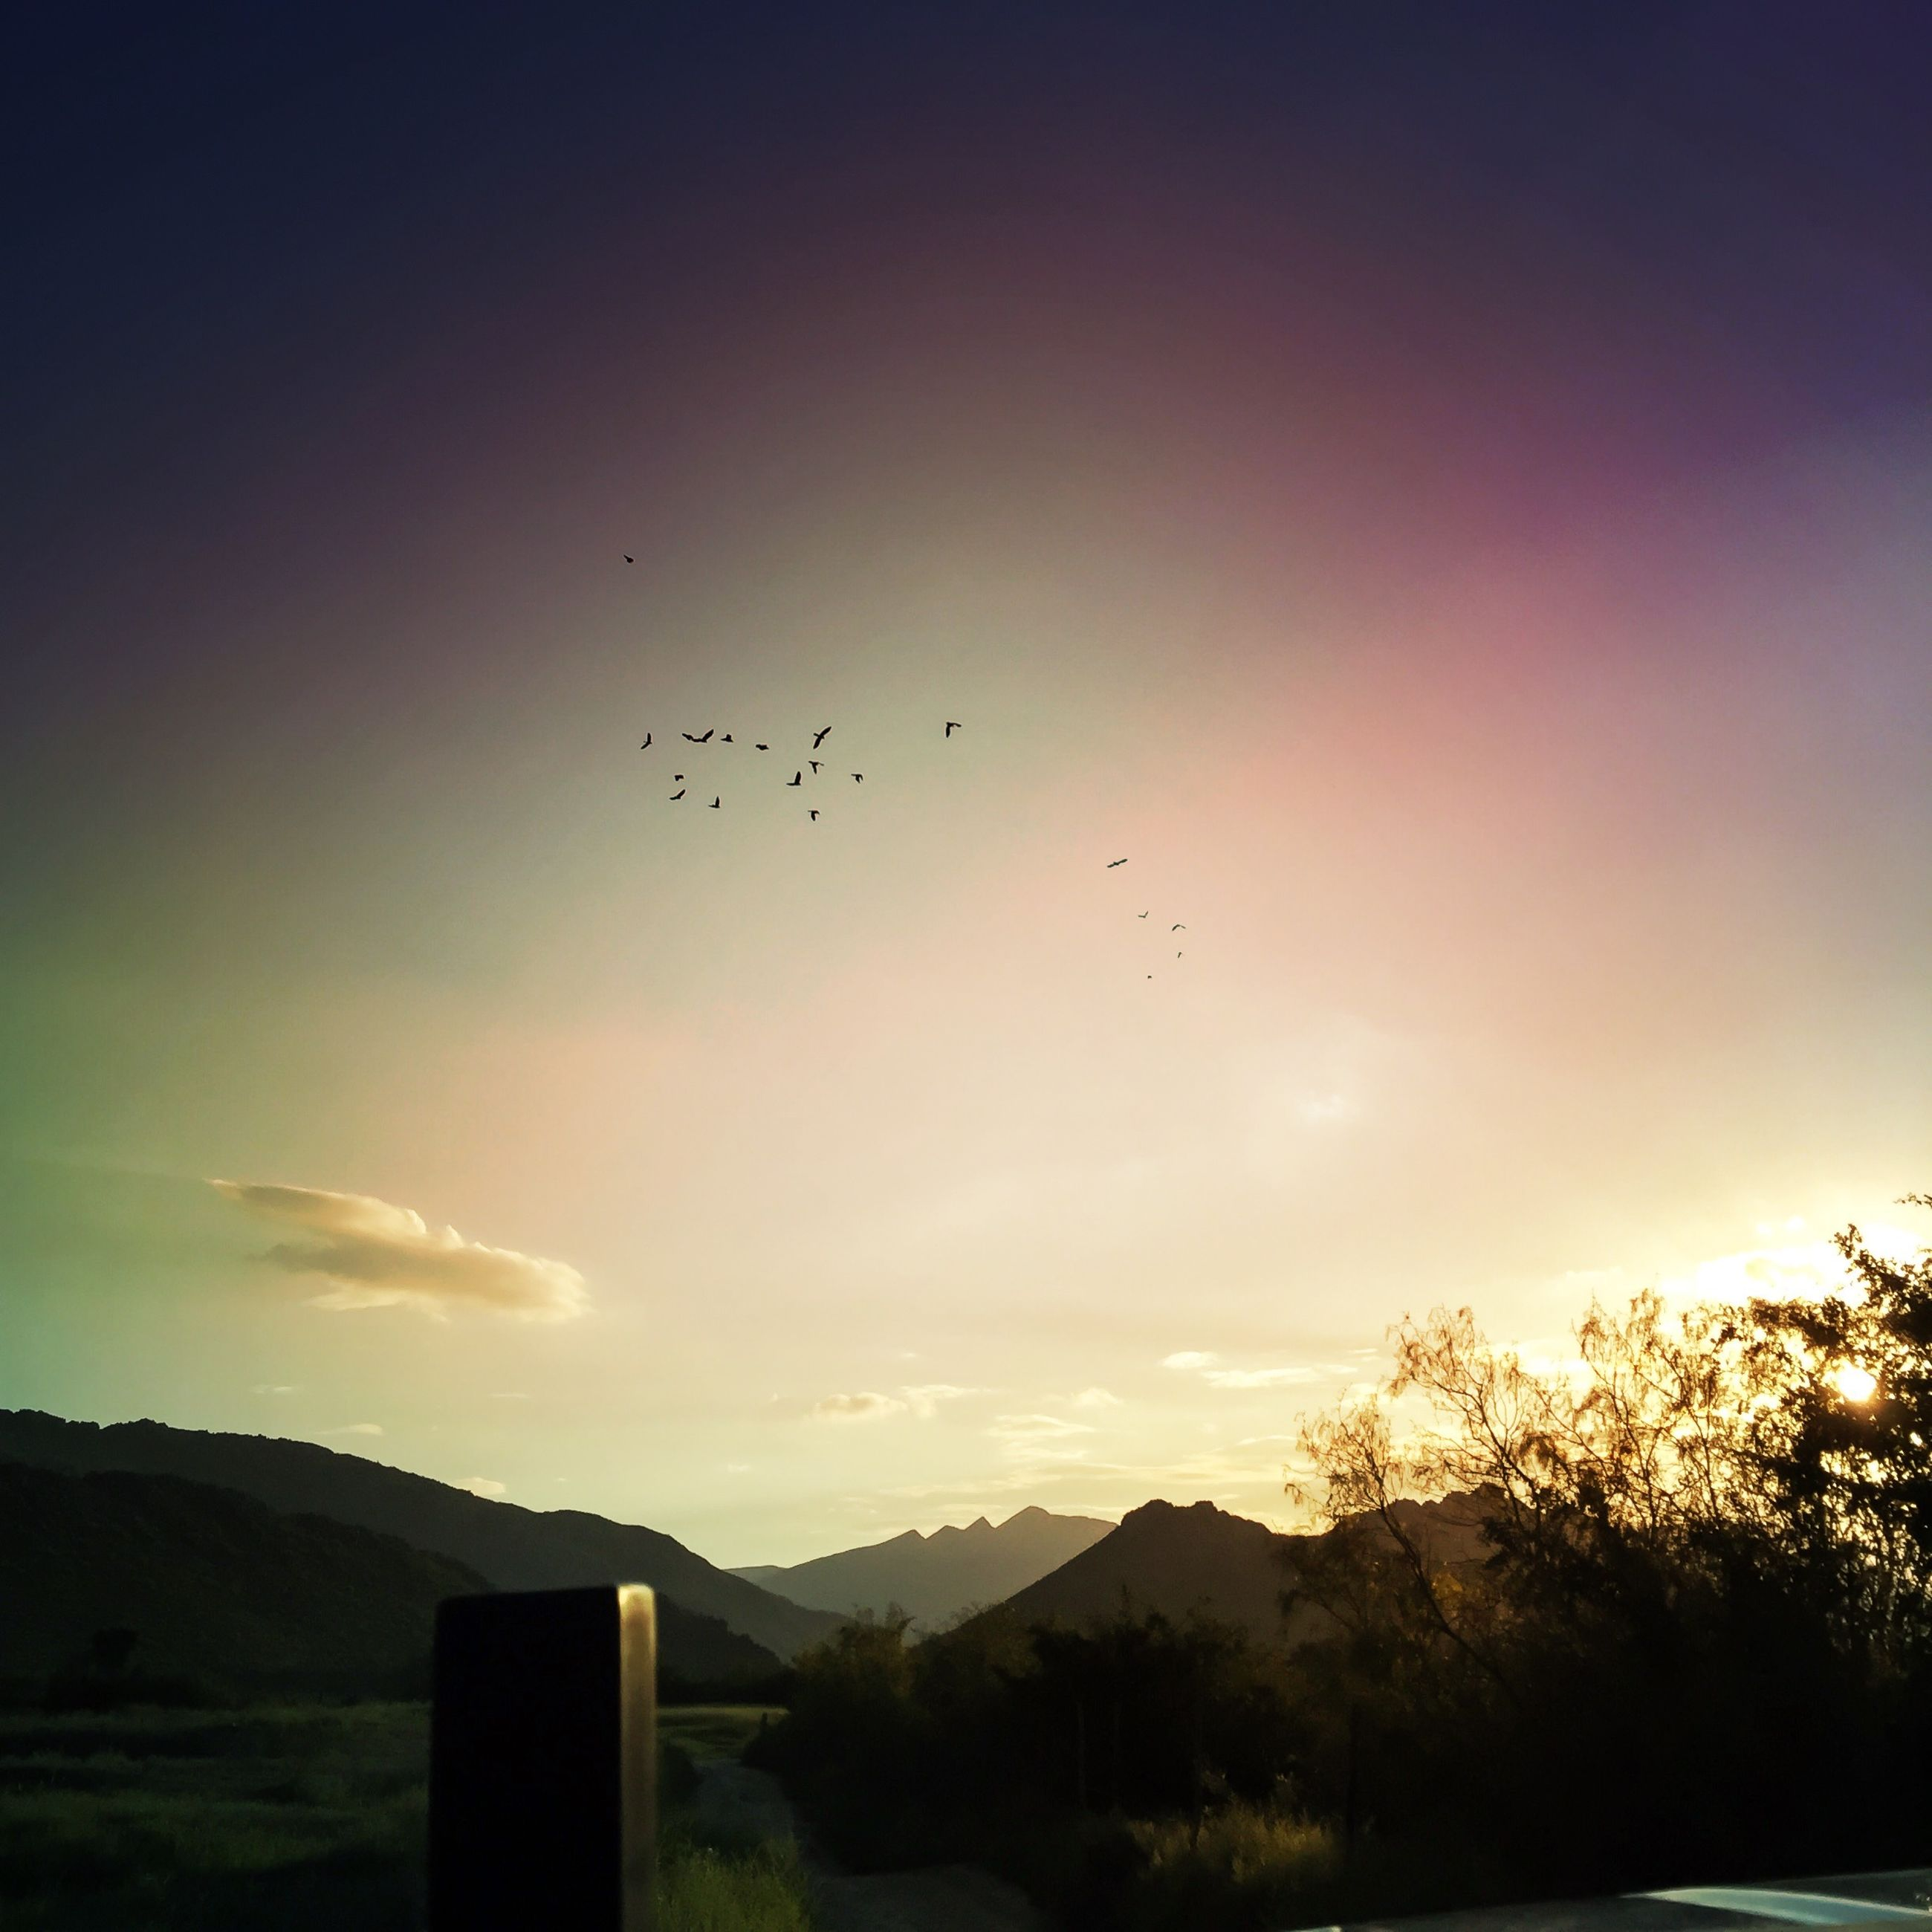 bird, animal themes, flying, animals in the wild, silhouette, wildlife, sunset, sky, tree, landscape, nature, beauty in nature, scenics, tranquil scene, tranquility, mountain, mid-air, flock of birds, outdoors